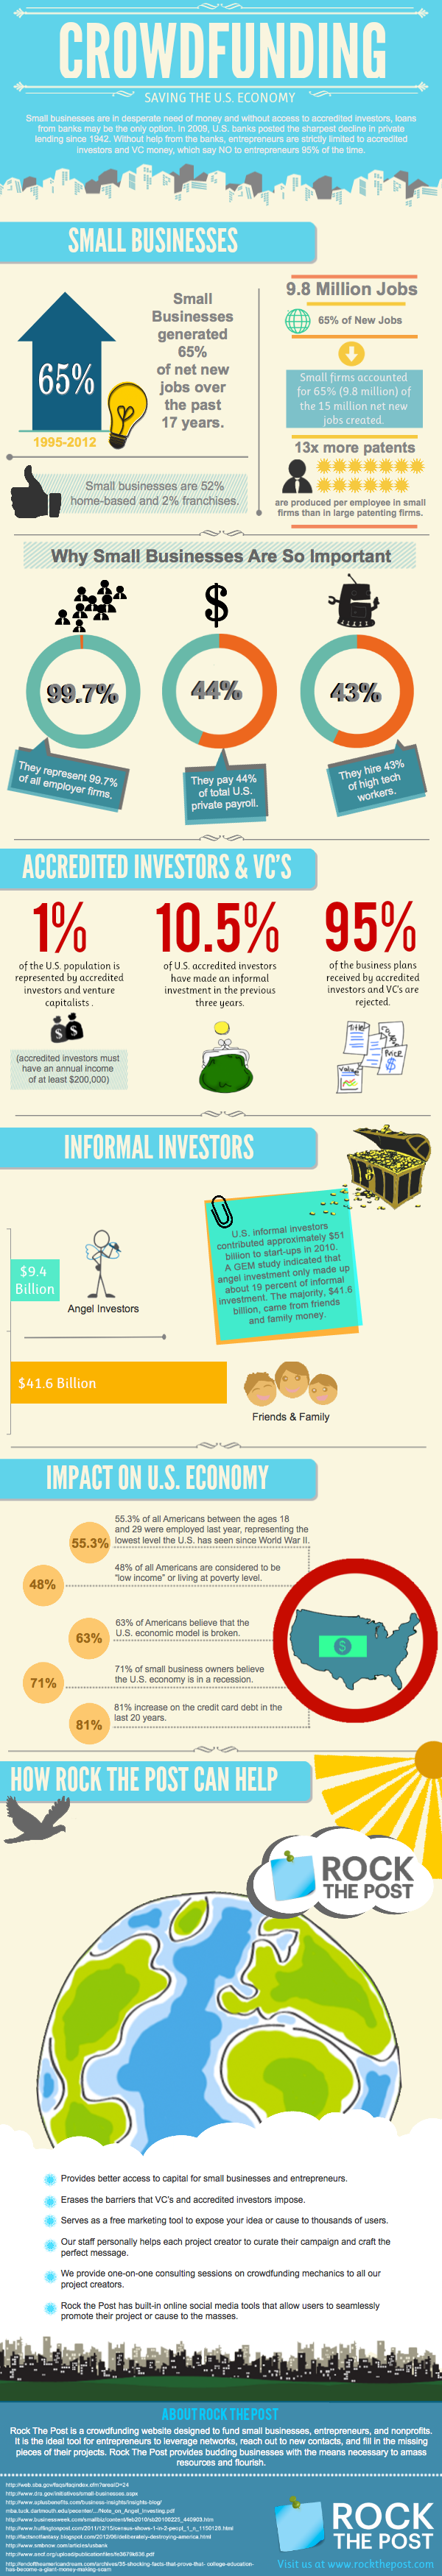 Crowdfunding: Saving the U.S. Economy